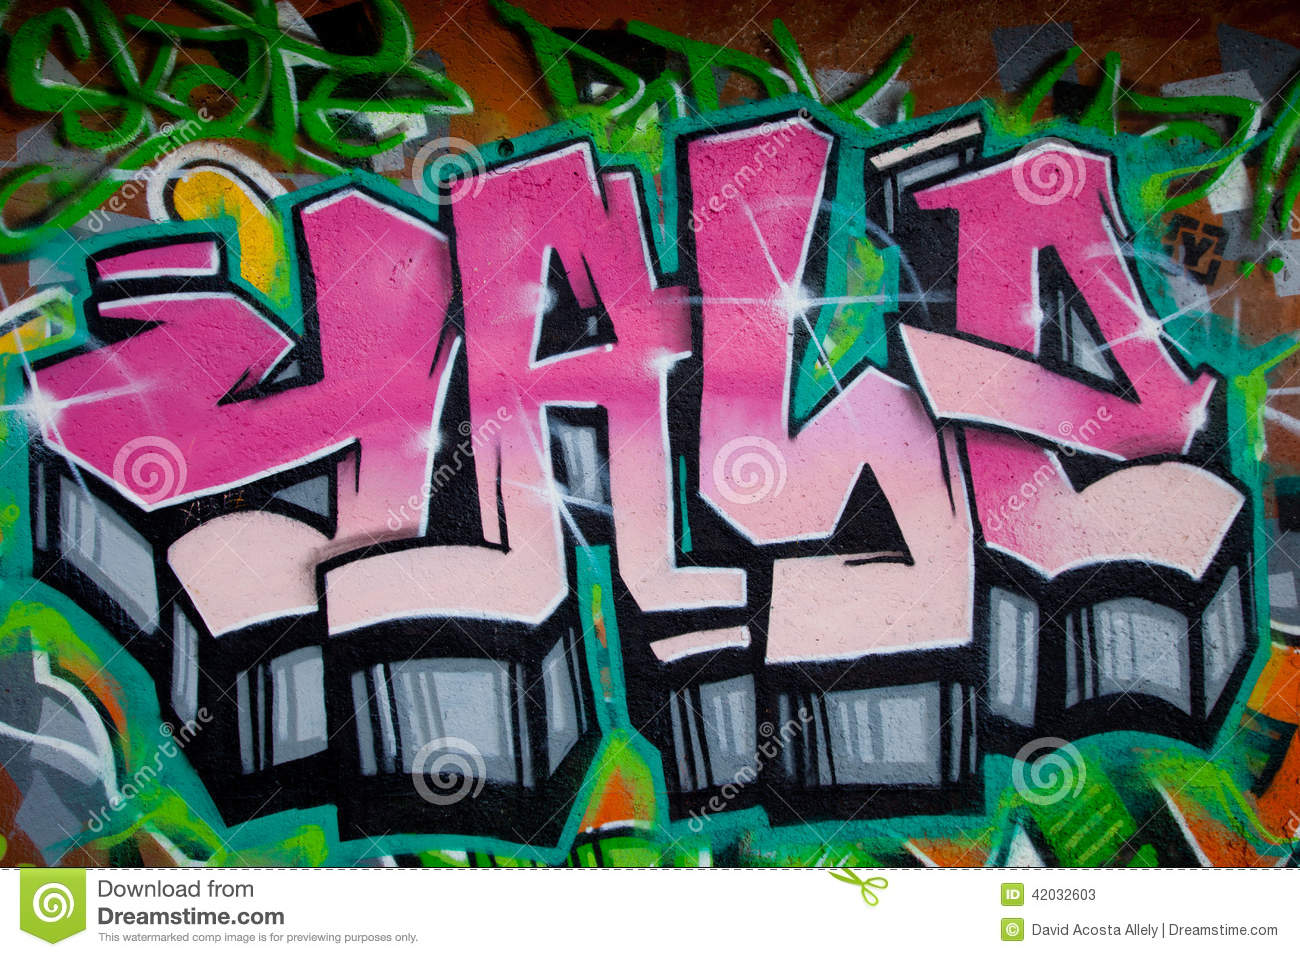 of painting the walls with spray and that commonly is called graffiti. Black Bedroom Furniture Sets. Home Design Ideas